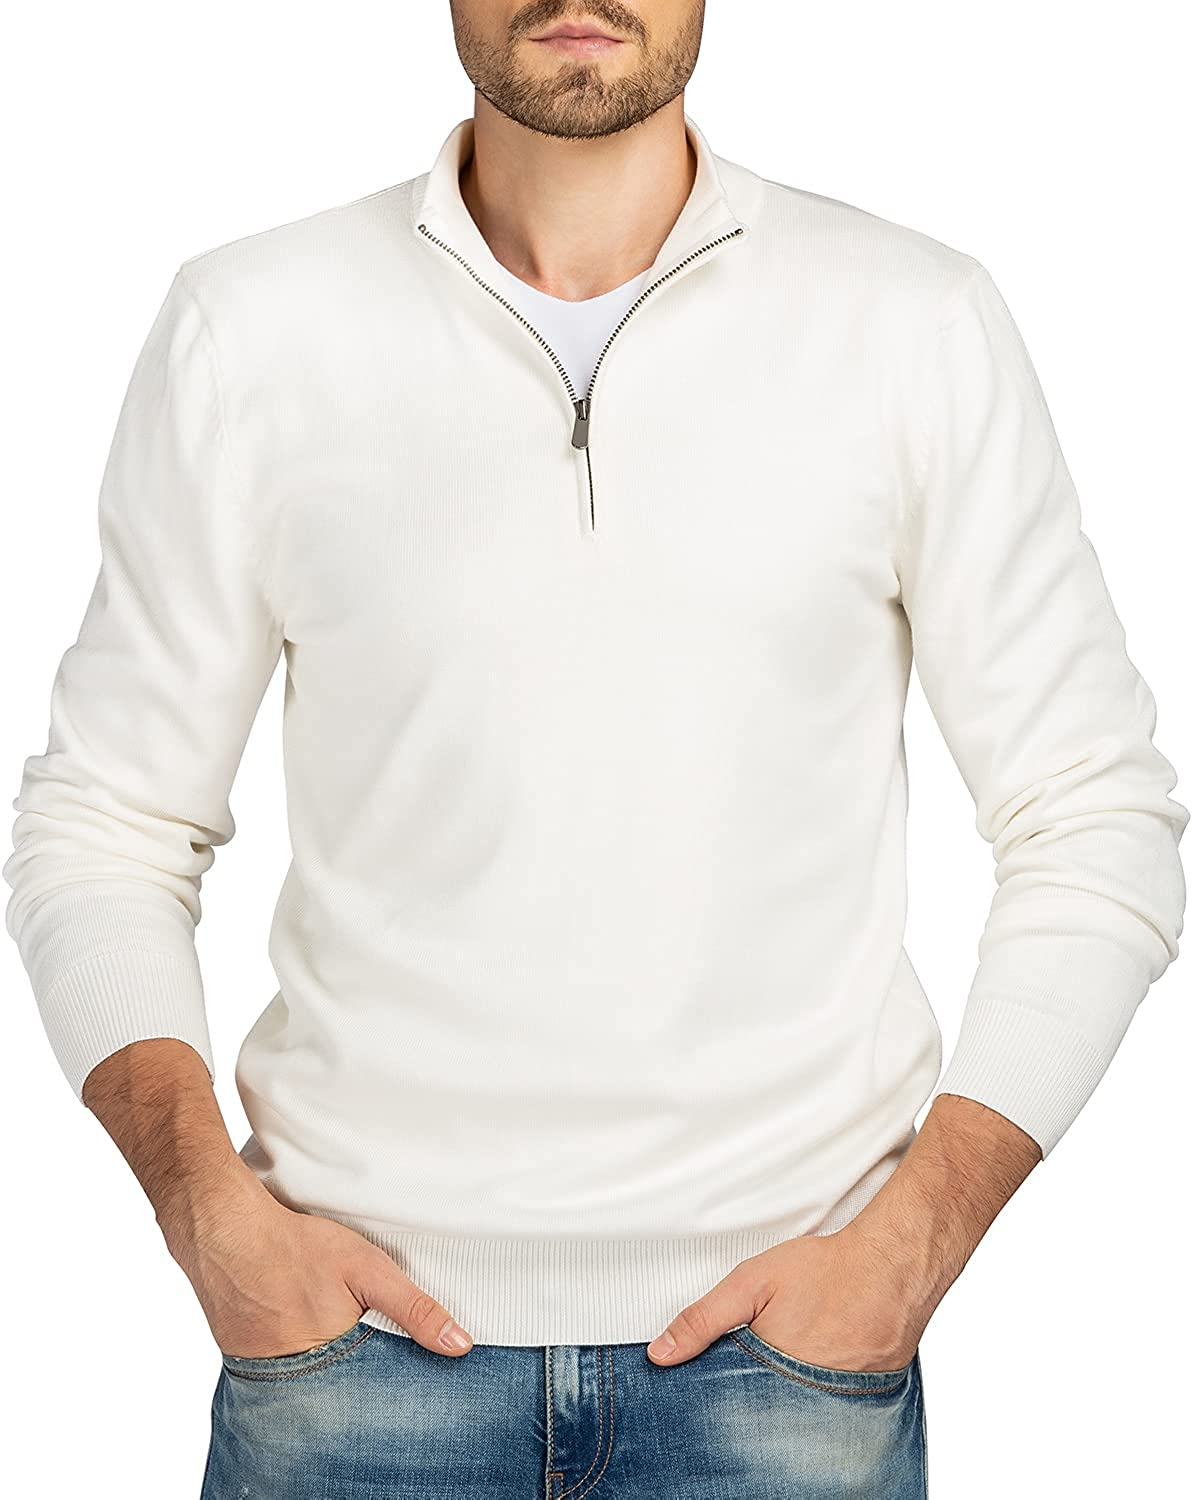 We1Fit Men's Quarter Zip Sweaters Slim Cotton OFFicial store Max 65% OFF Knitted T Fit Mock